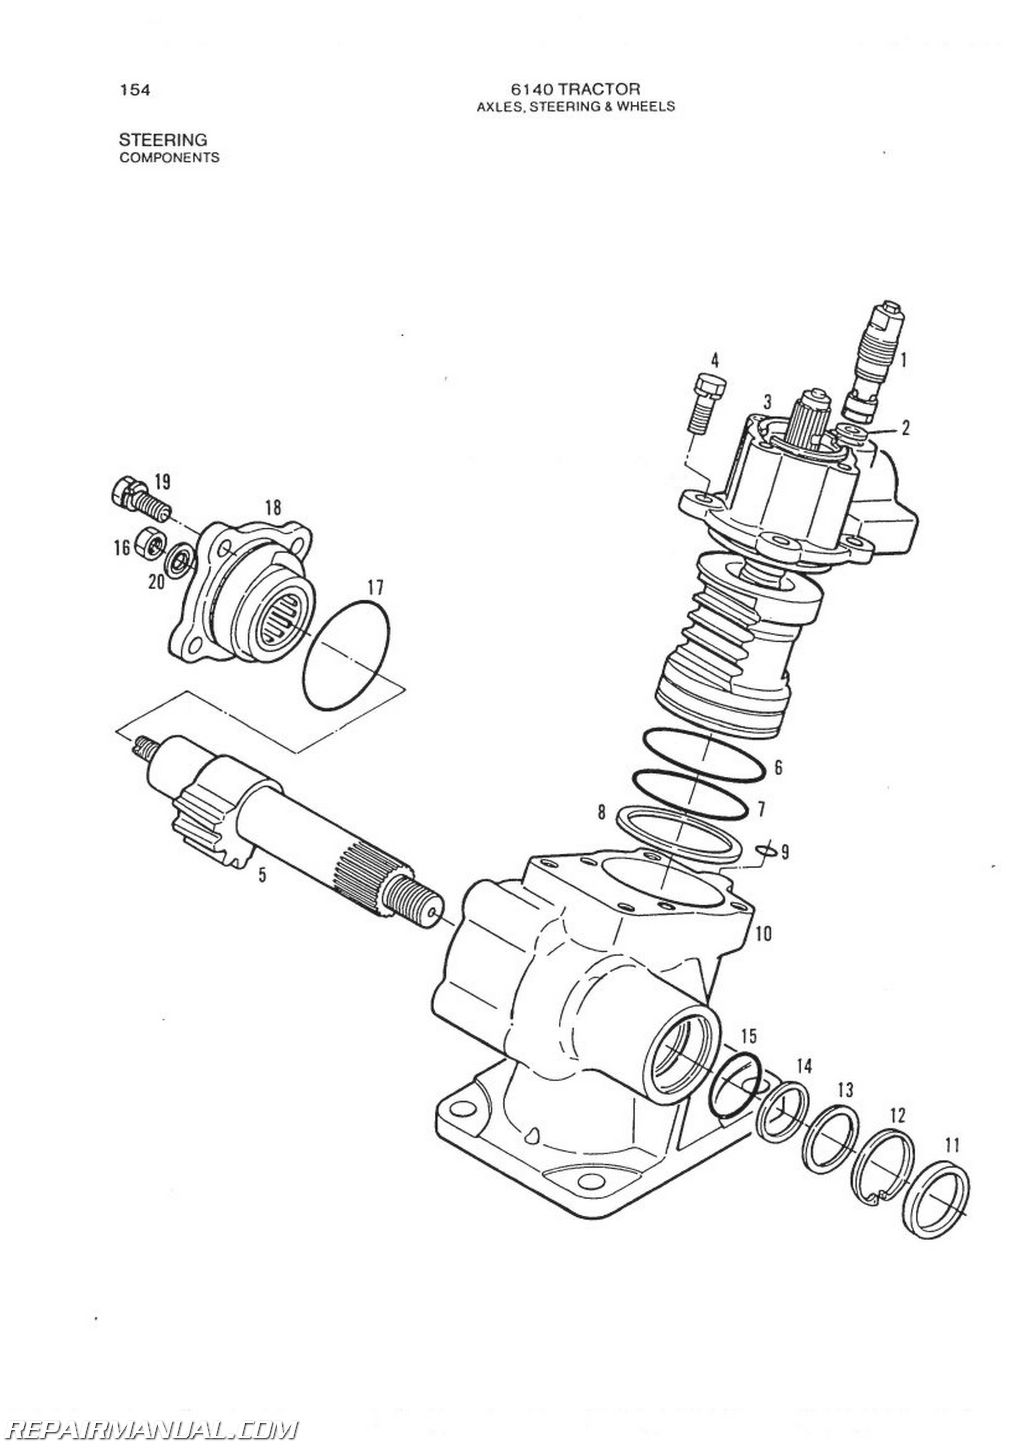 allis chalmers model 6140 2 4 wd parts manual